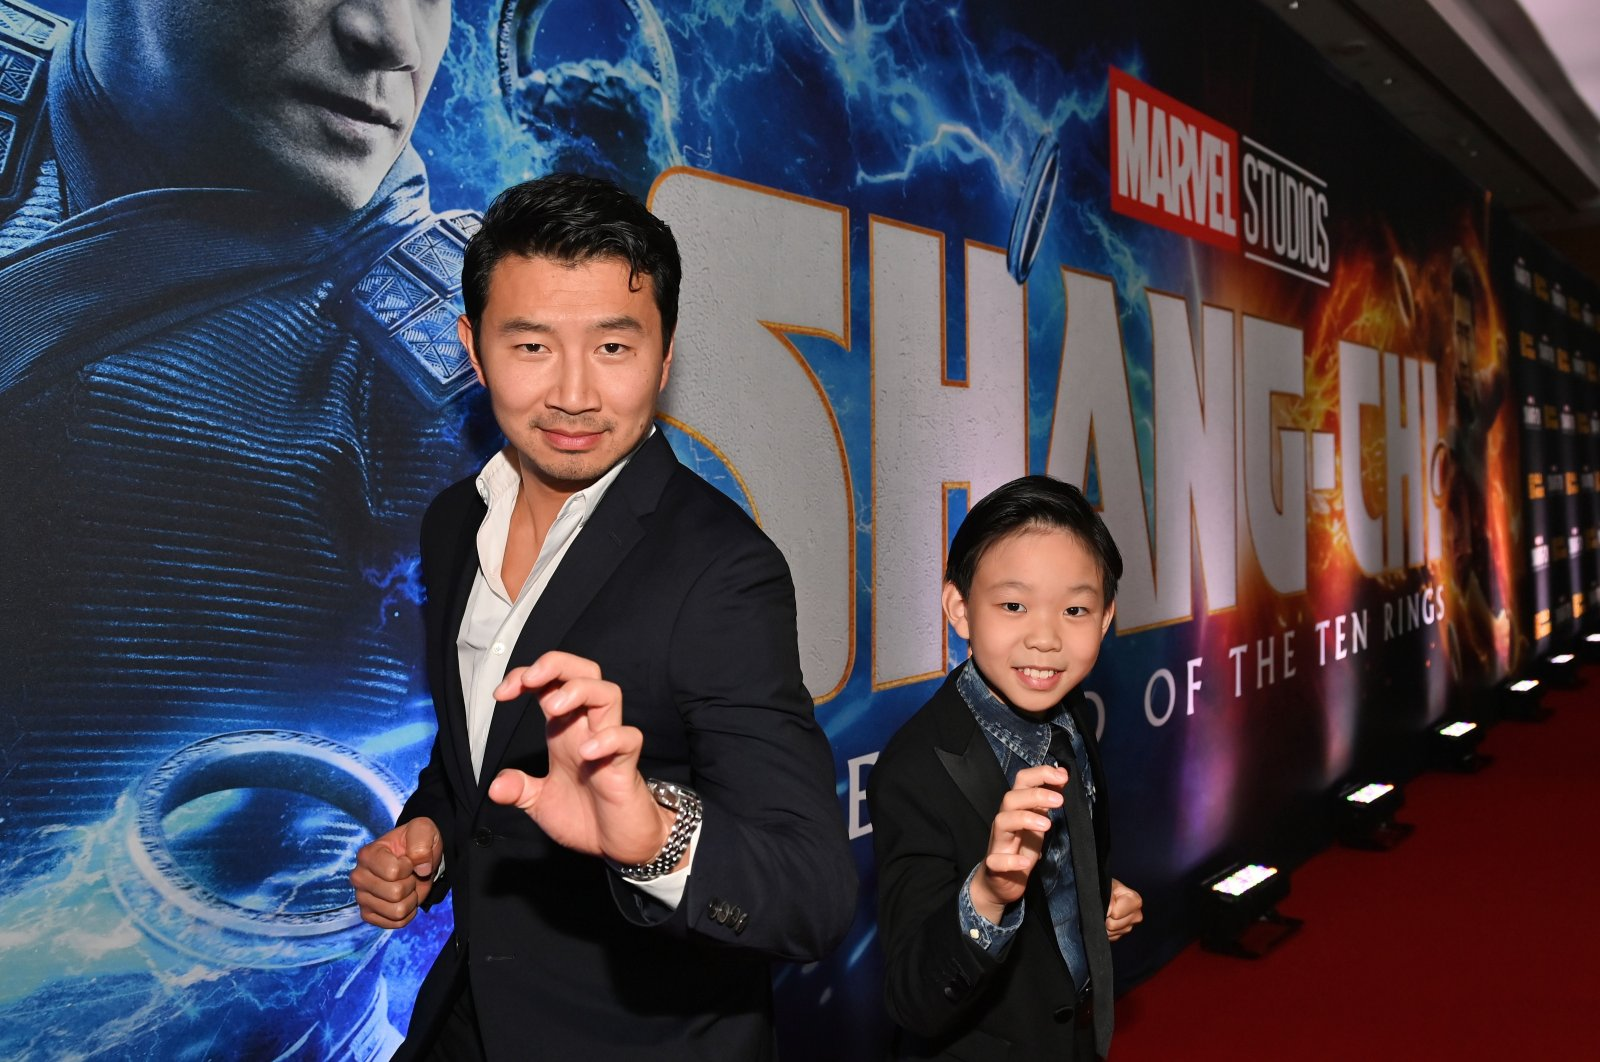 """Actors Simu Liu (L) and Jayden Zhang attend the Toronto Premiere of """"Shang-Chi and the Legend of the Ten Rings"""" at Shangri-La Hotel in Toronto, Ontario, Canada, Sept. 1, 2021. (Getty Images)"""